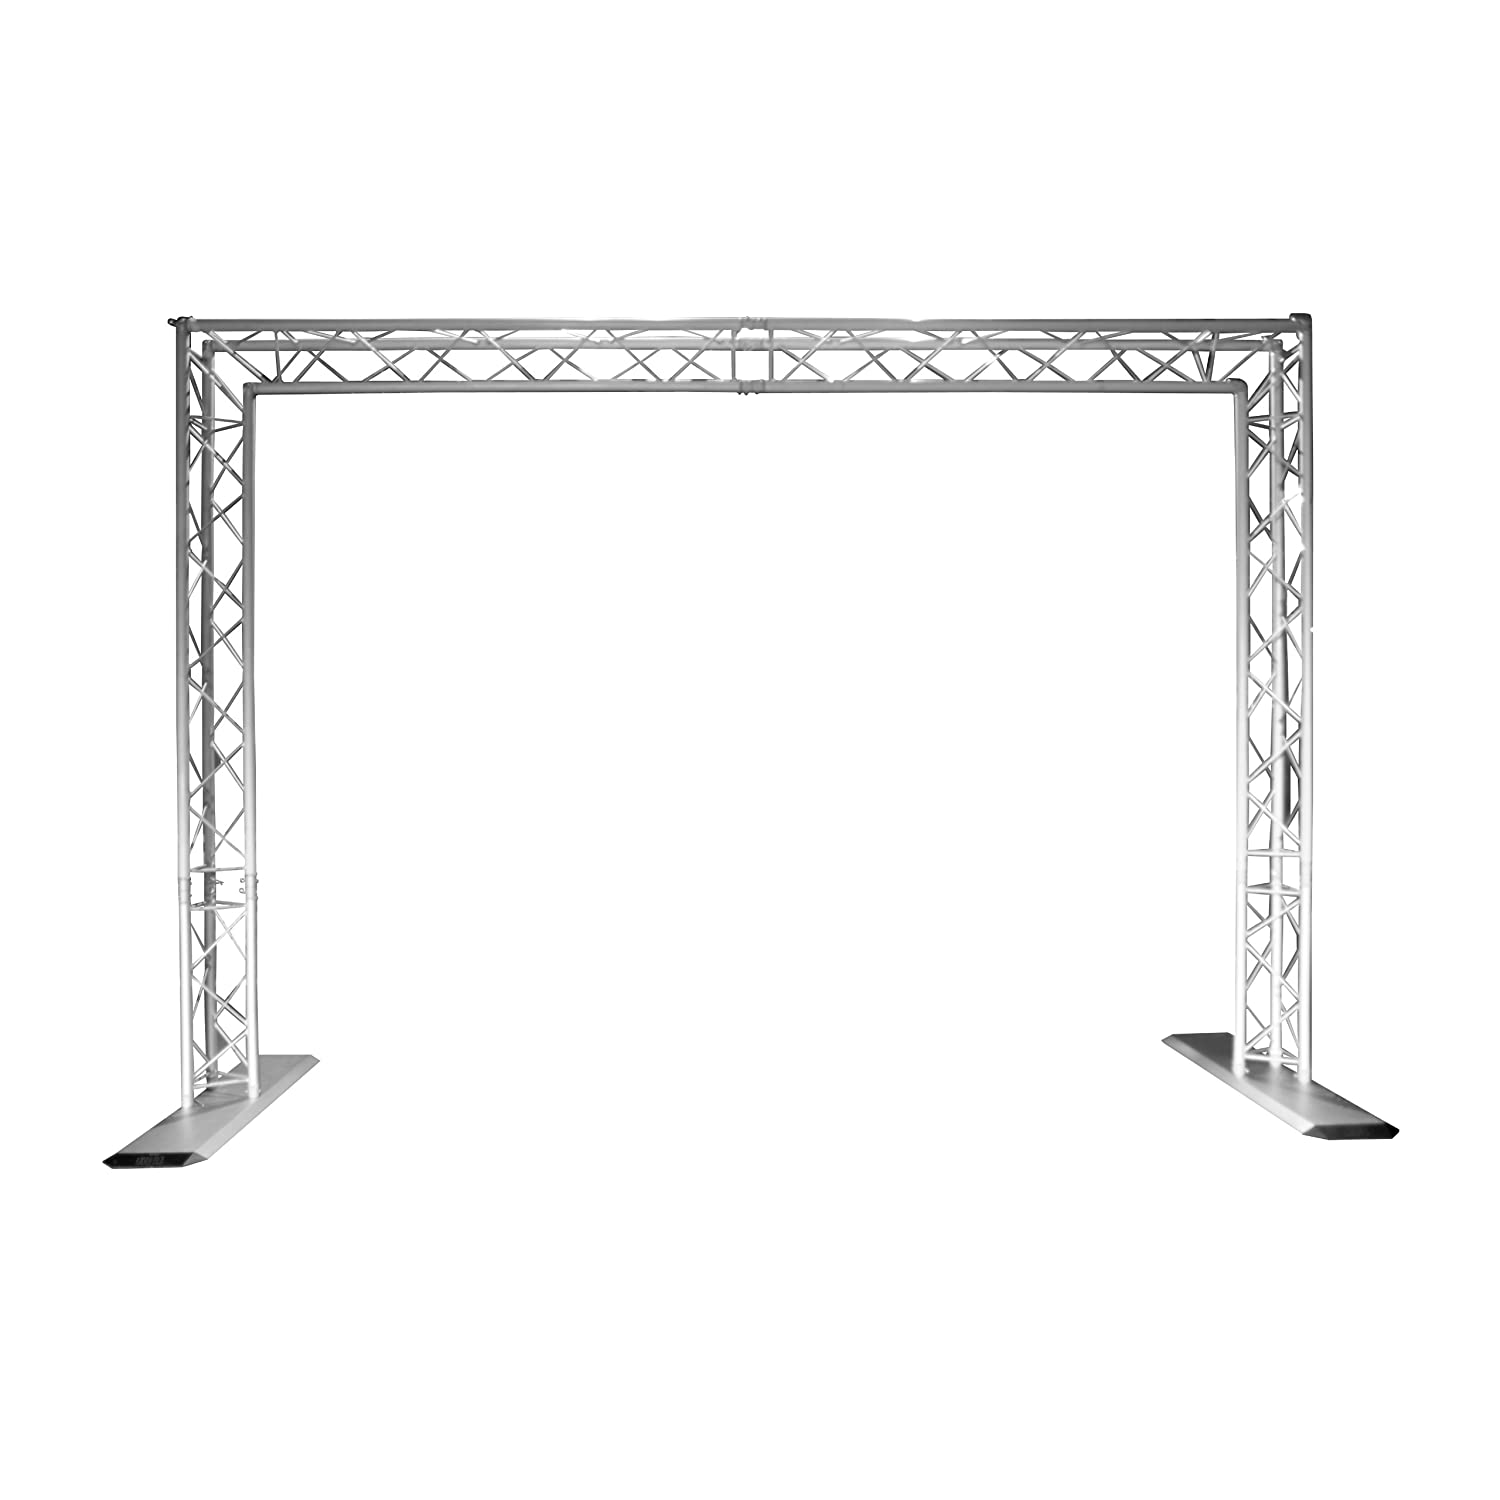 bridge undefine undefined lighting kiss truss light dj download with